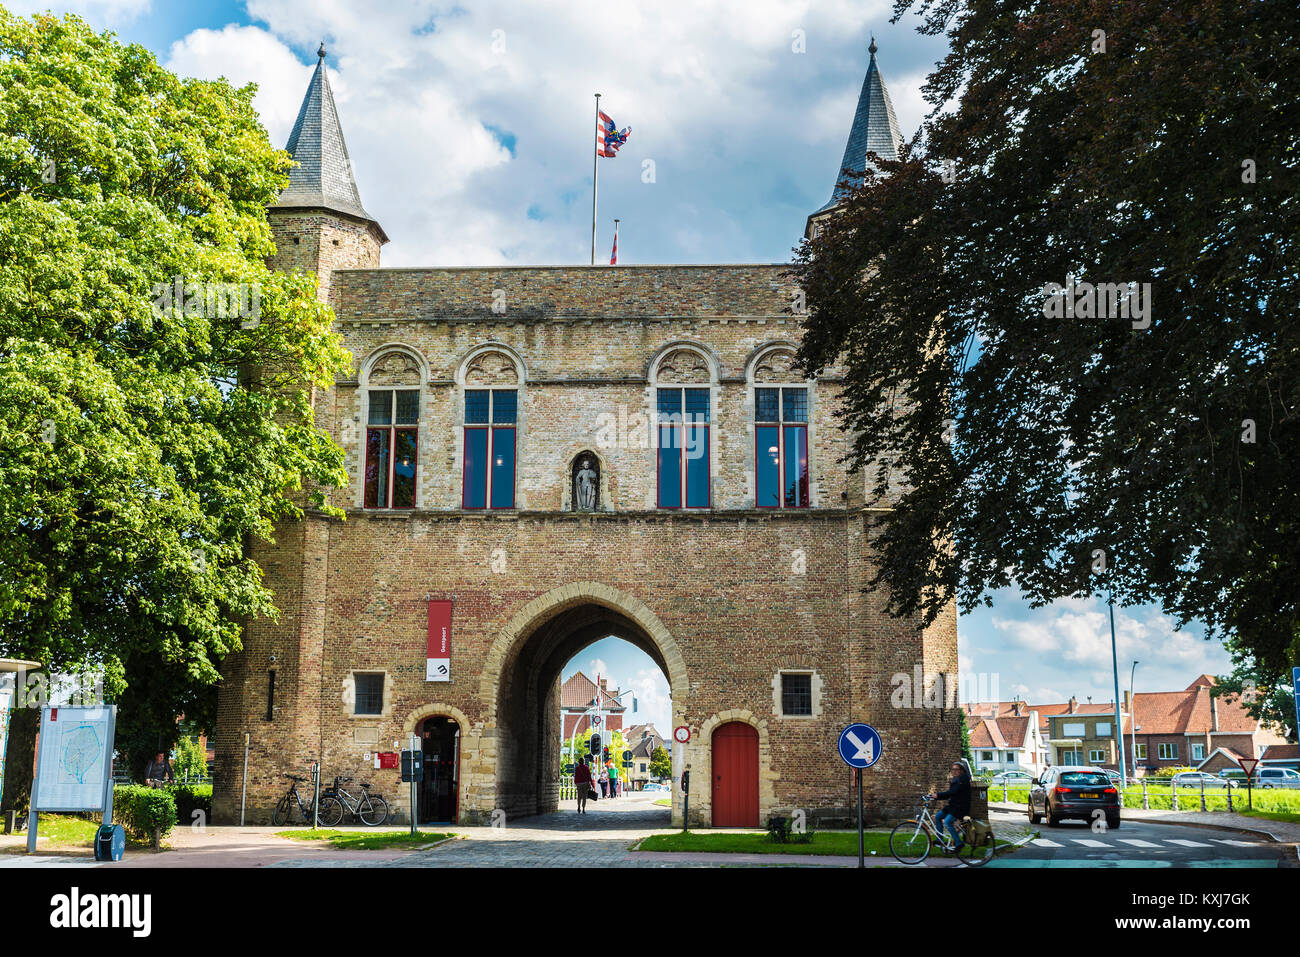 Bruges, Belgium, - August 31, 2017: Gentpoort (Gate of Ghent) with people circulating on bike in the medieval city Stock Photo